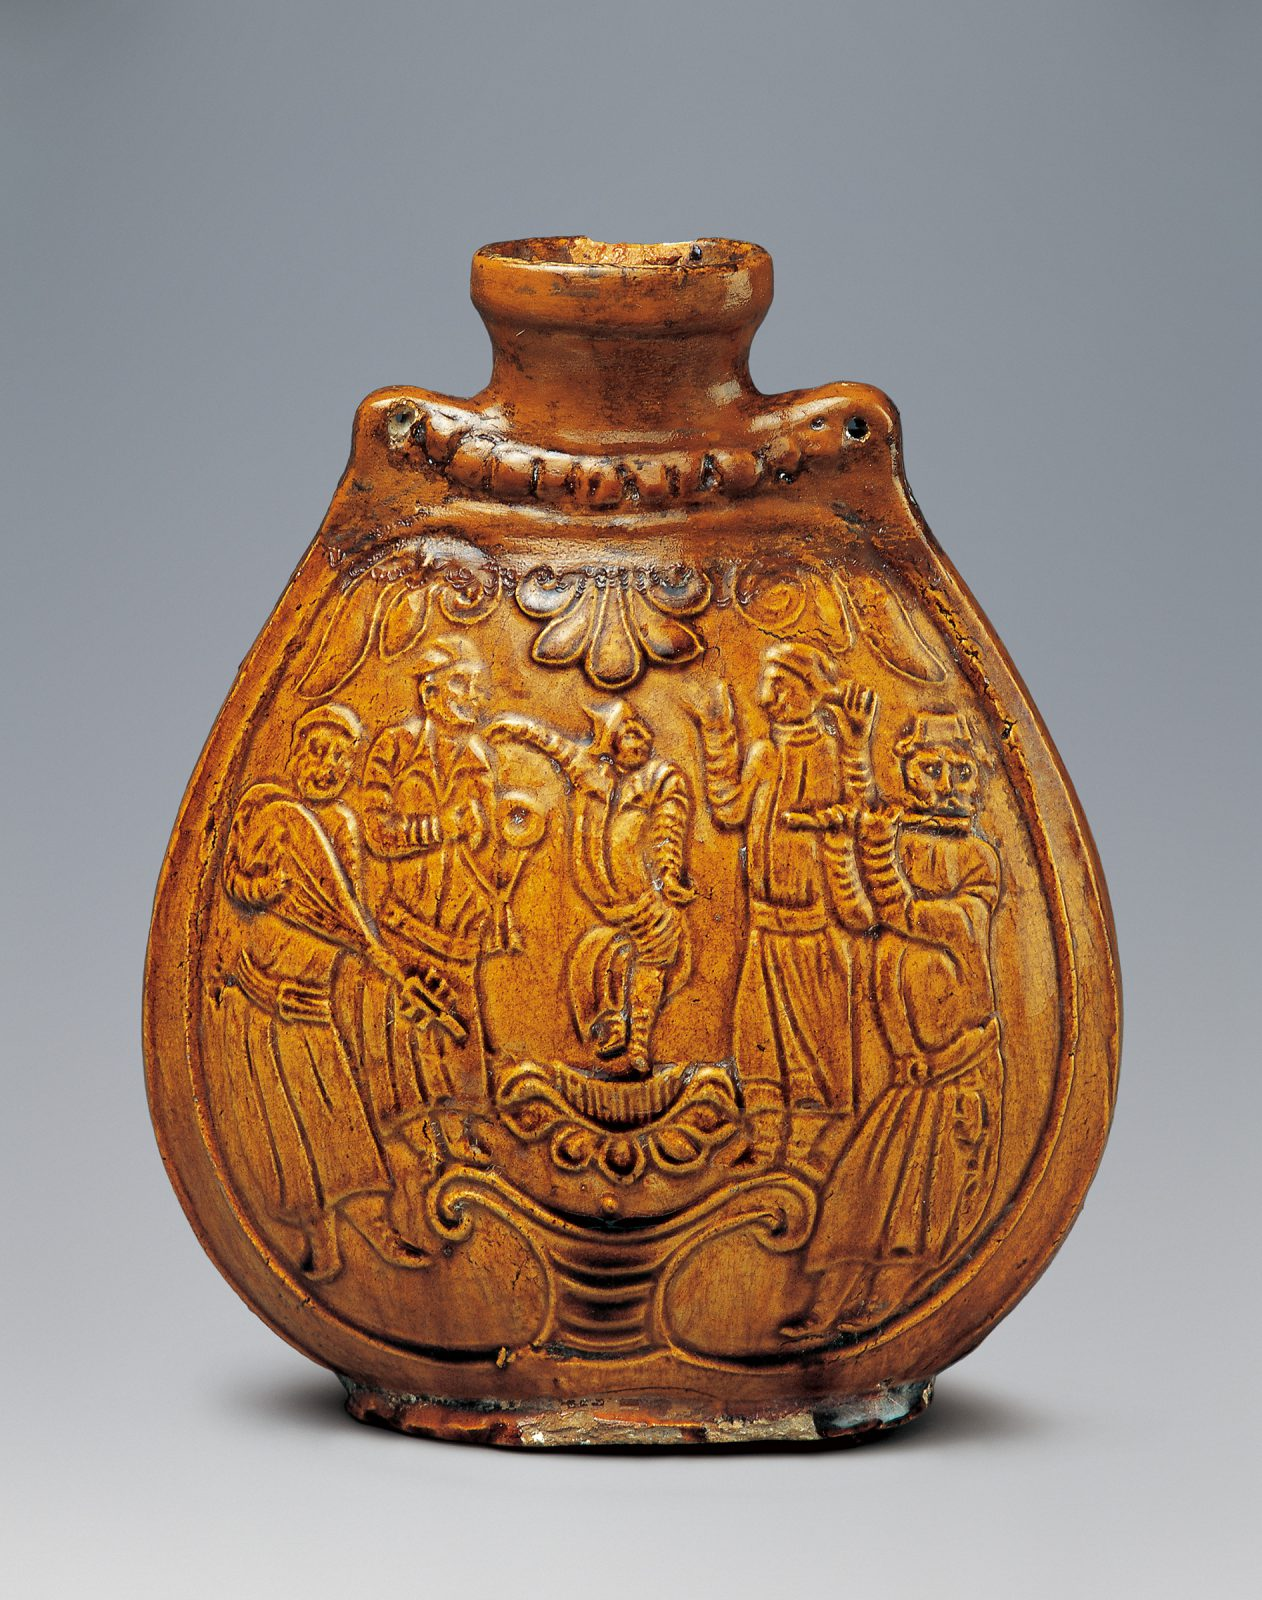 Musicians dance on the flask